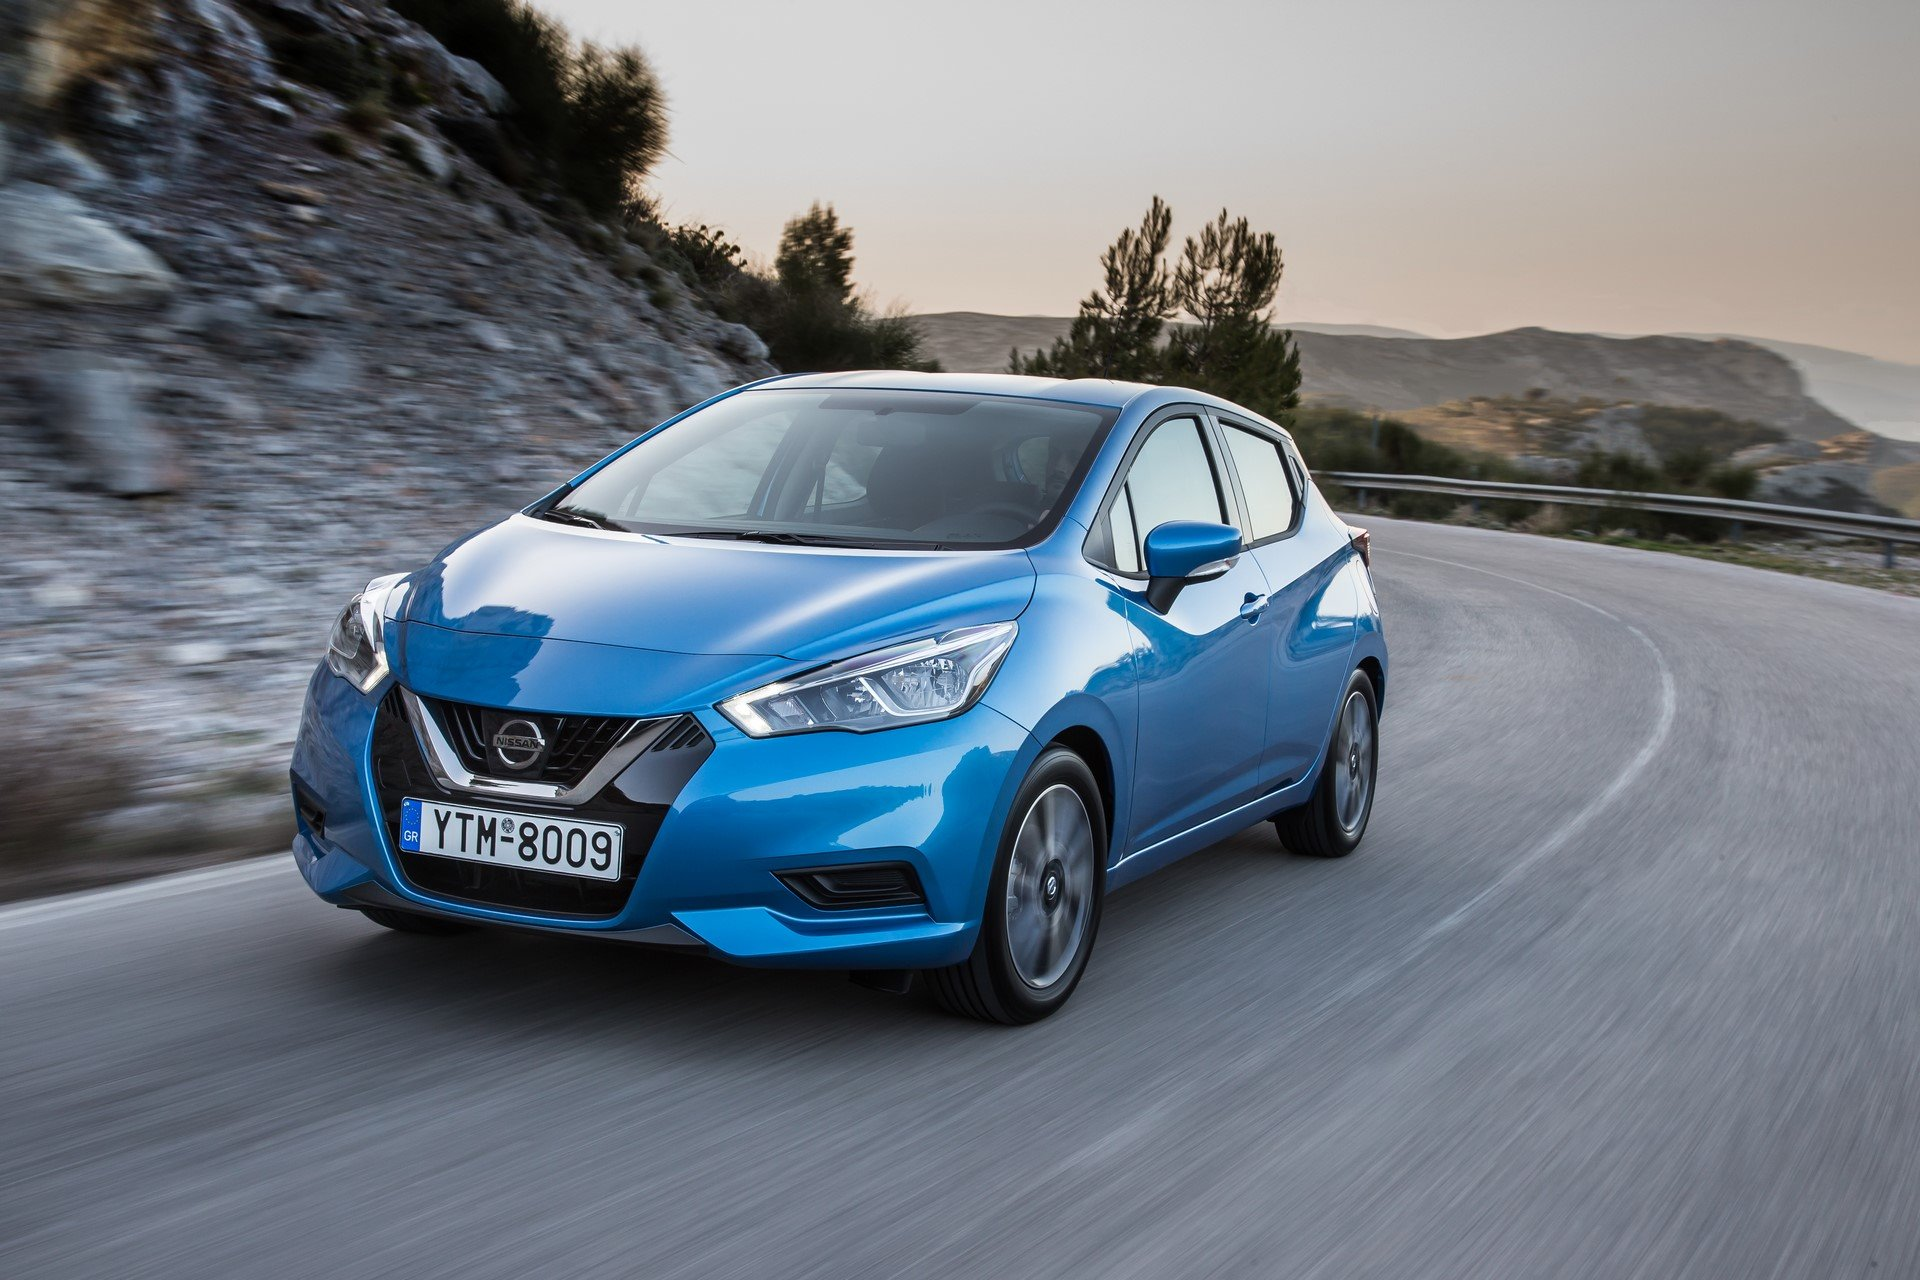 Nissan Micra 2019 Greek (56)